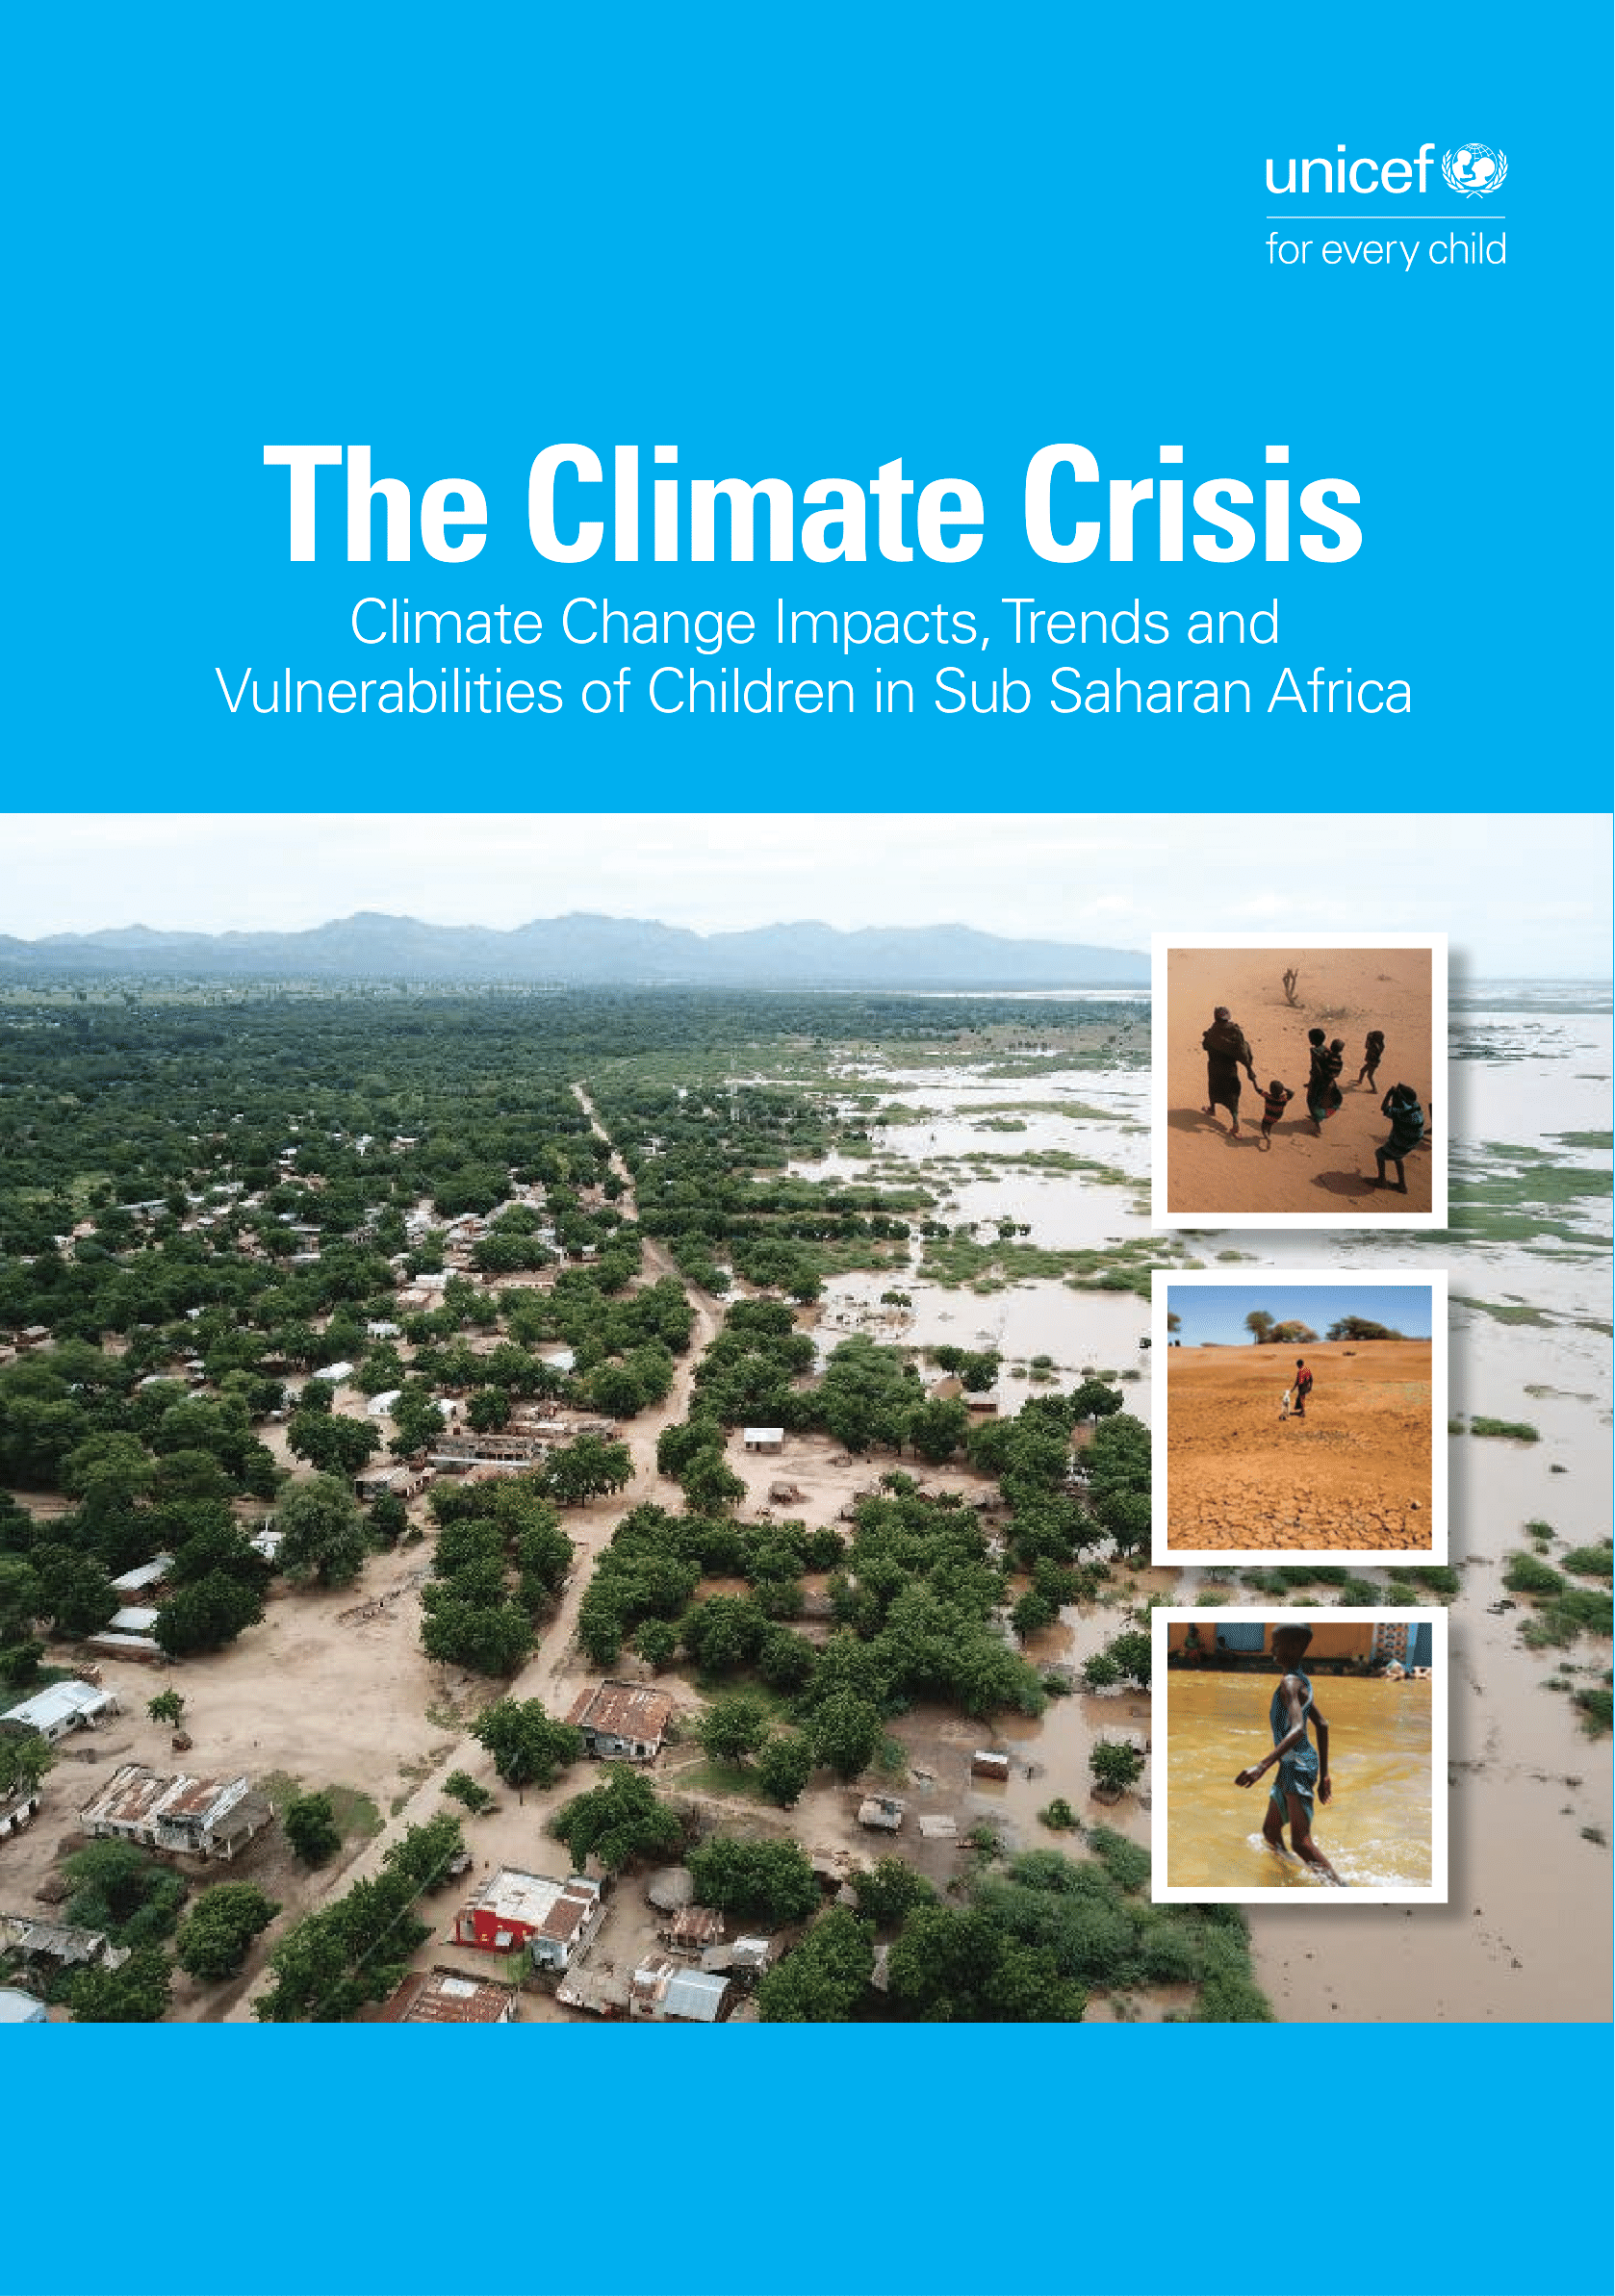 The Climate Crisis Report: Climate Change Impacts, Trends and Vulnerabilities of Children in Sub Saharan Africa